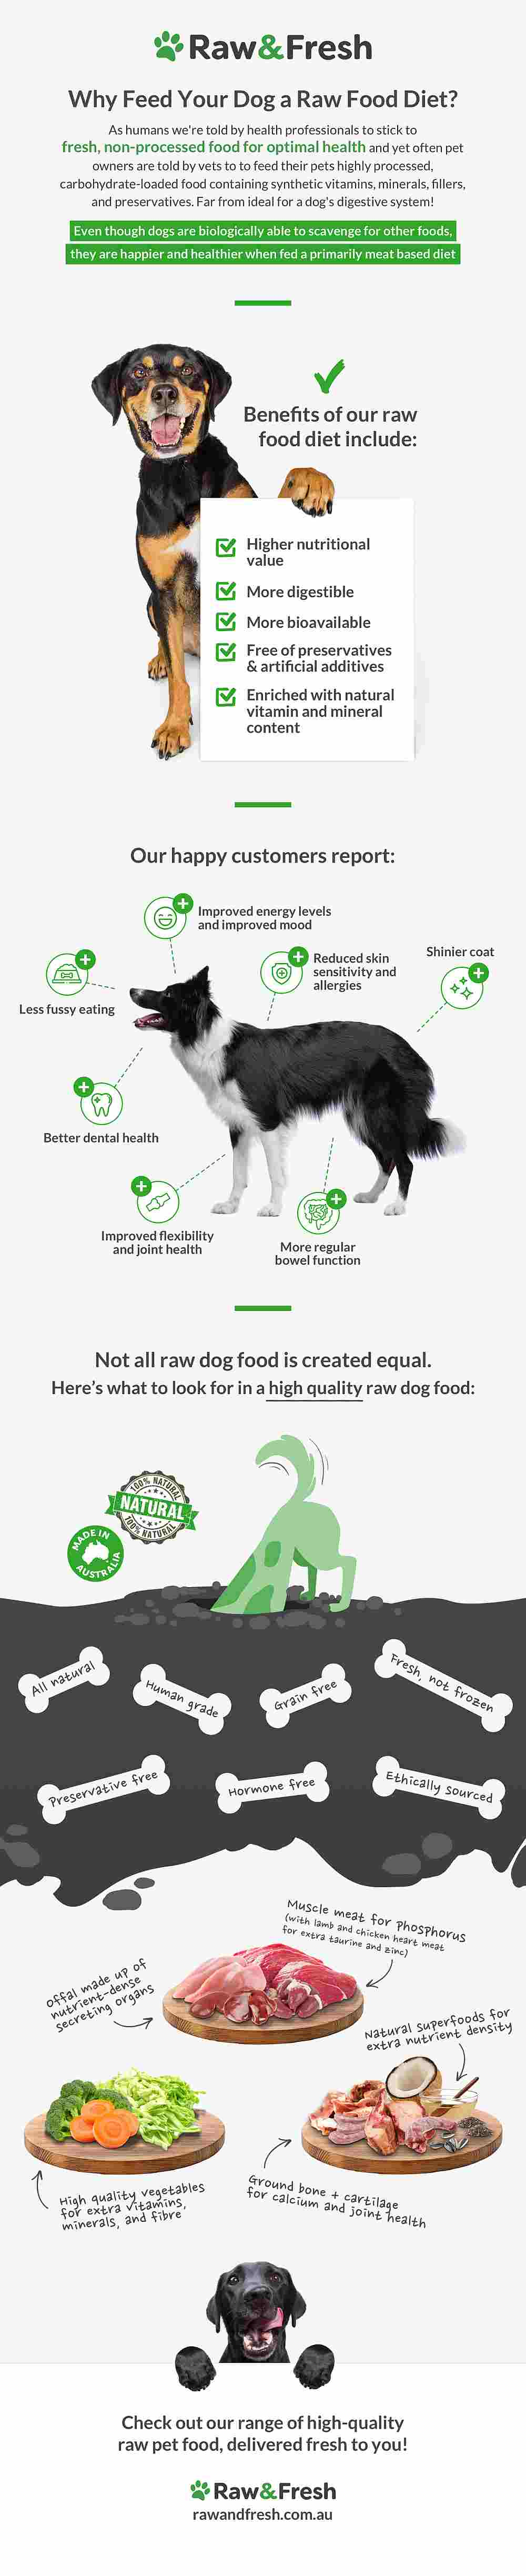 Why Feed Your Dog A Raw Food Diet?